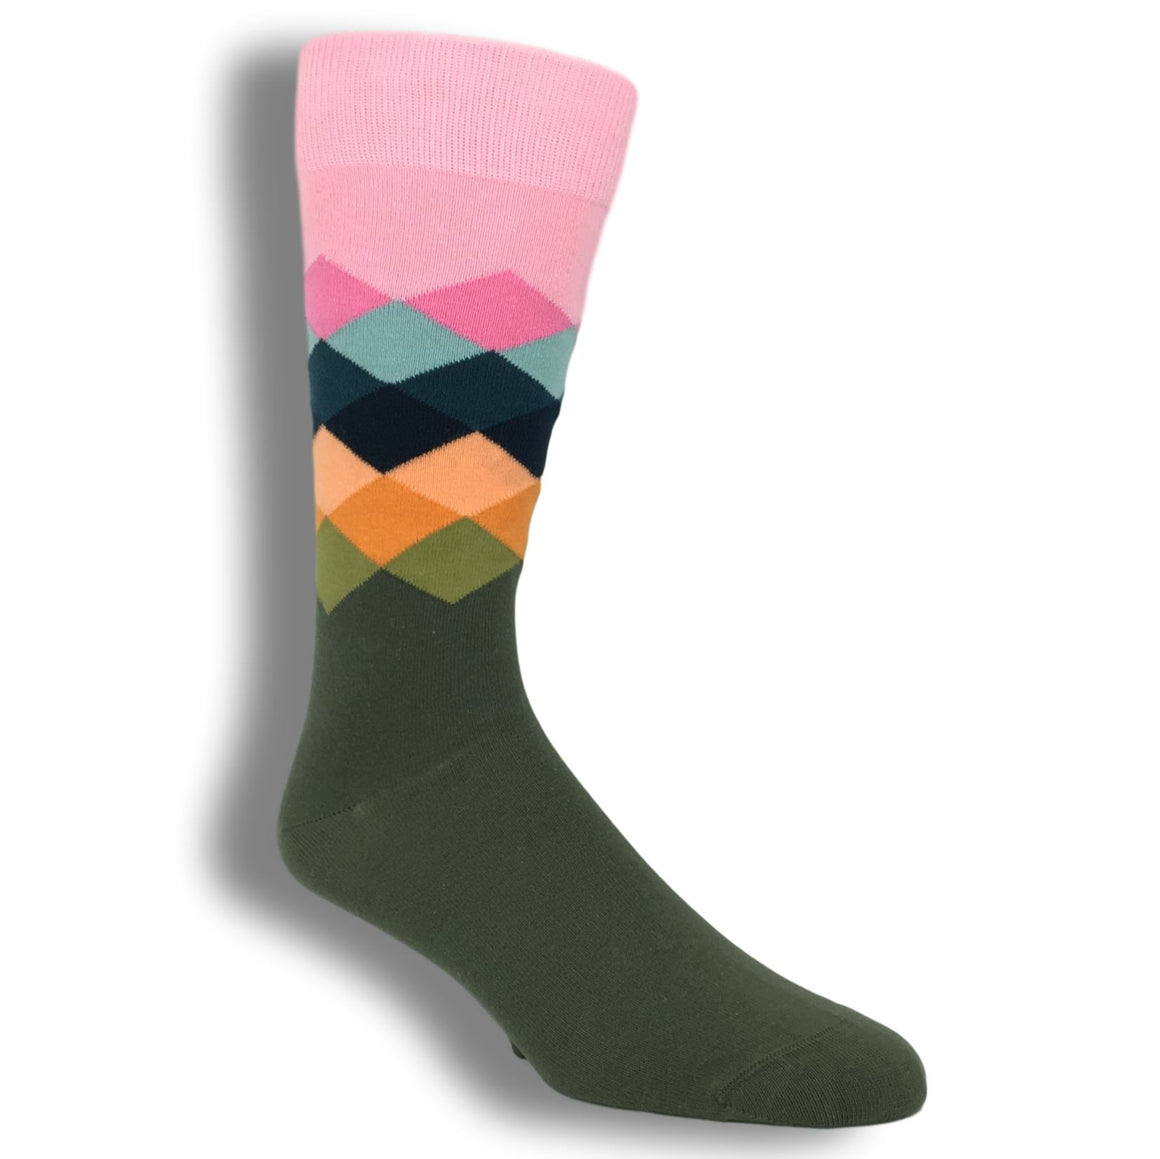 Pink, Orange, and Brown Faded Diamond Socks by Happy Socks - The Sock Spot